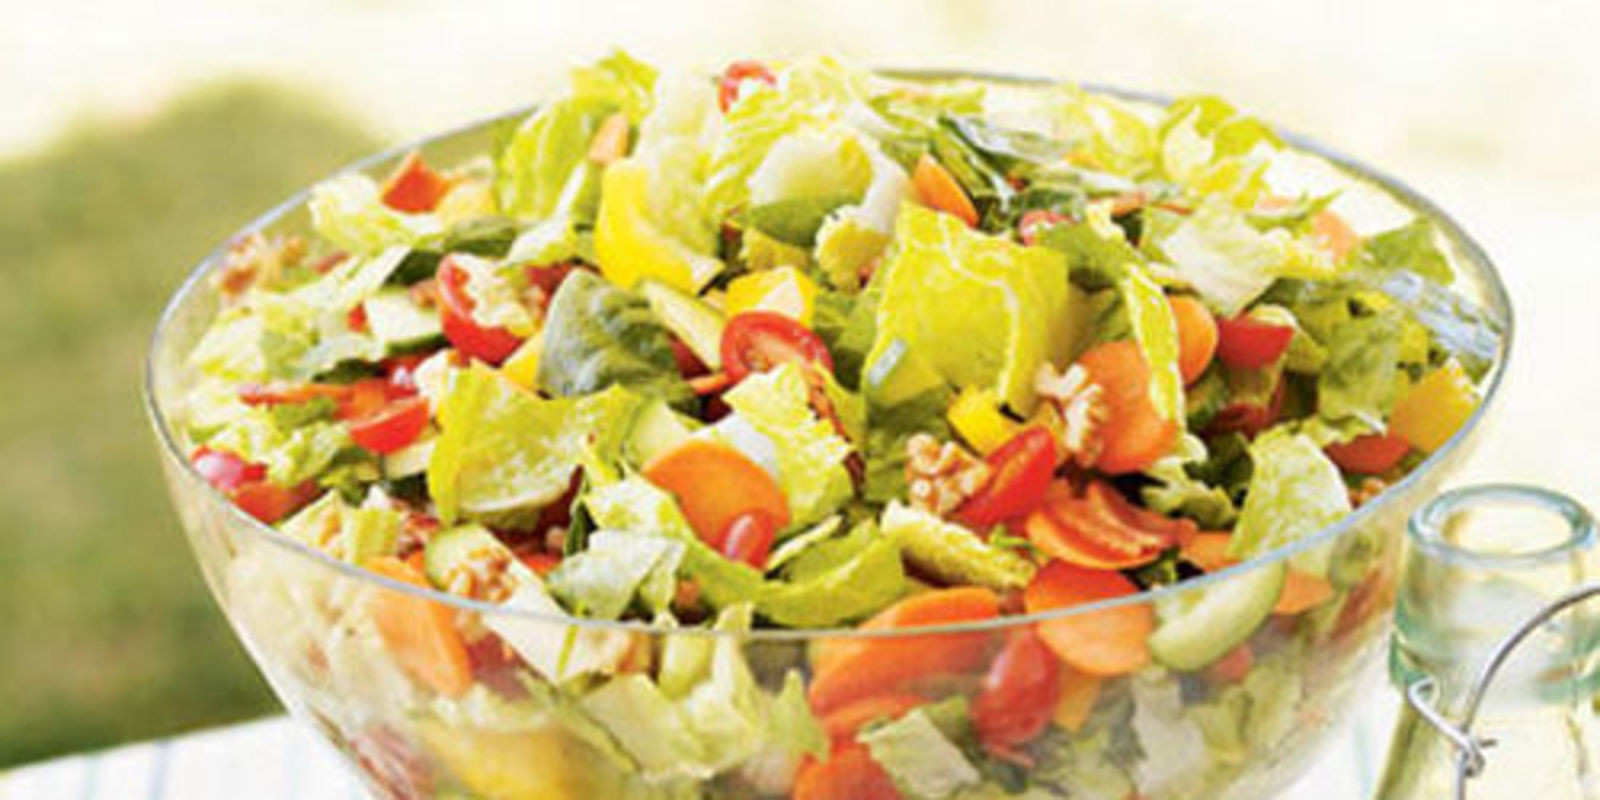 Best Summer Side Dishes  Summer Side Dishes Recipes Easy Recipes for Summer Sides